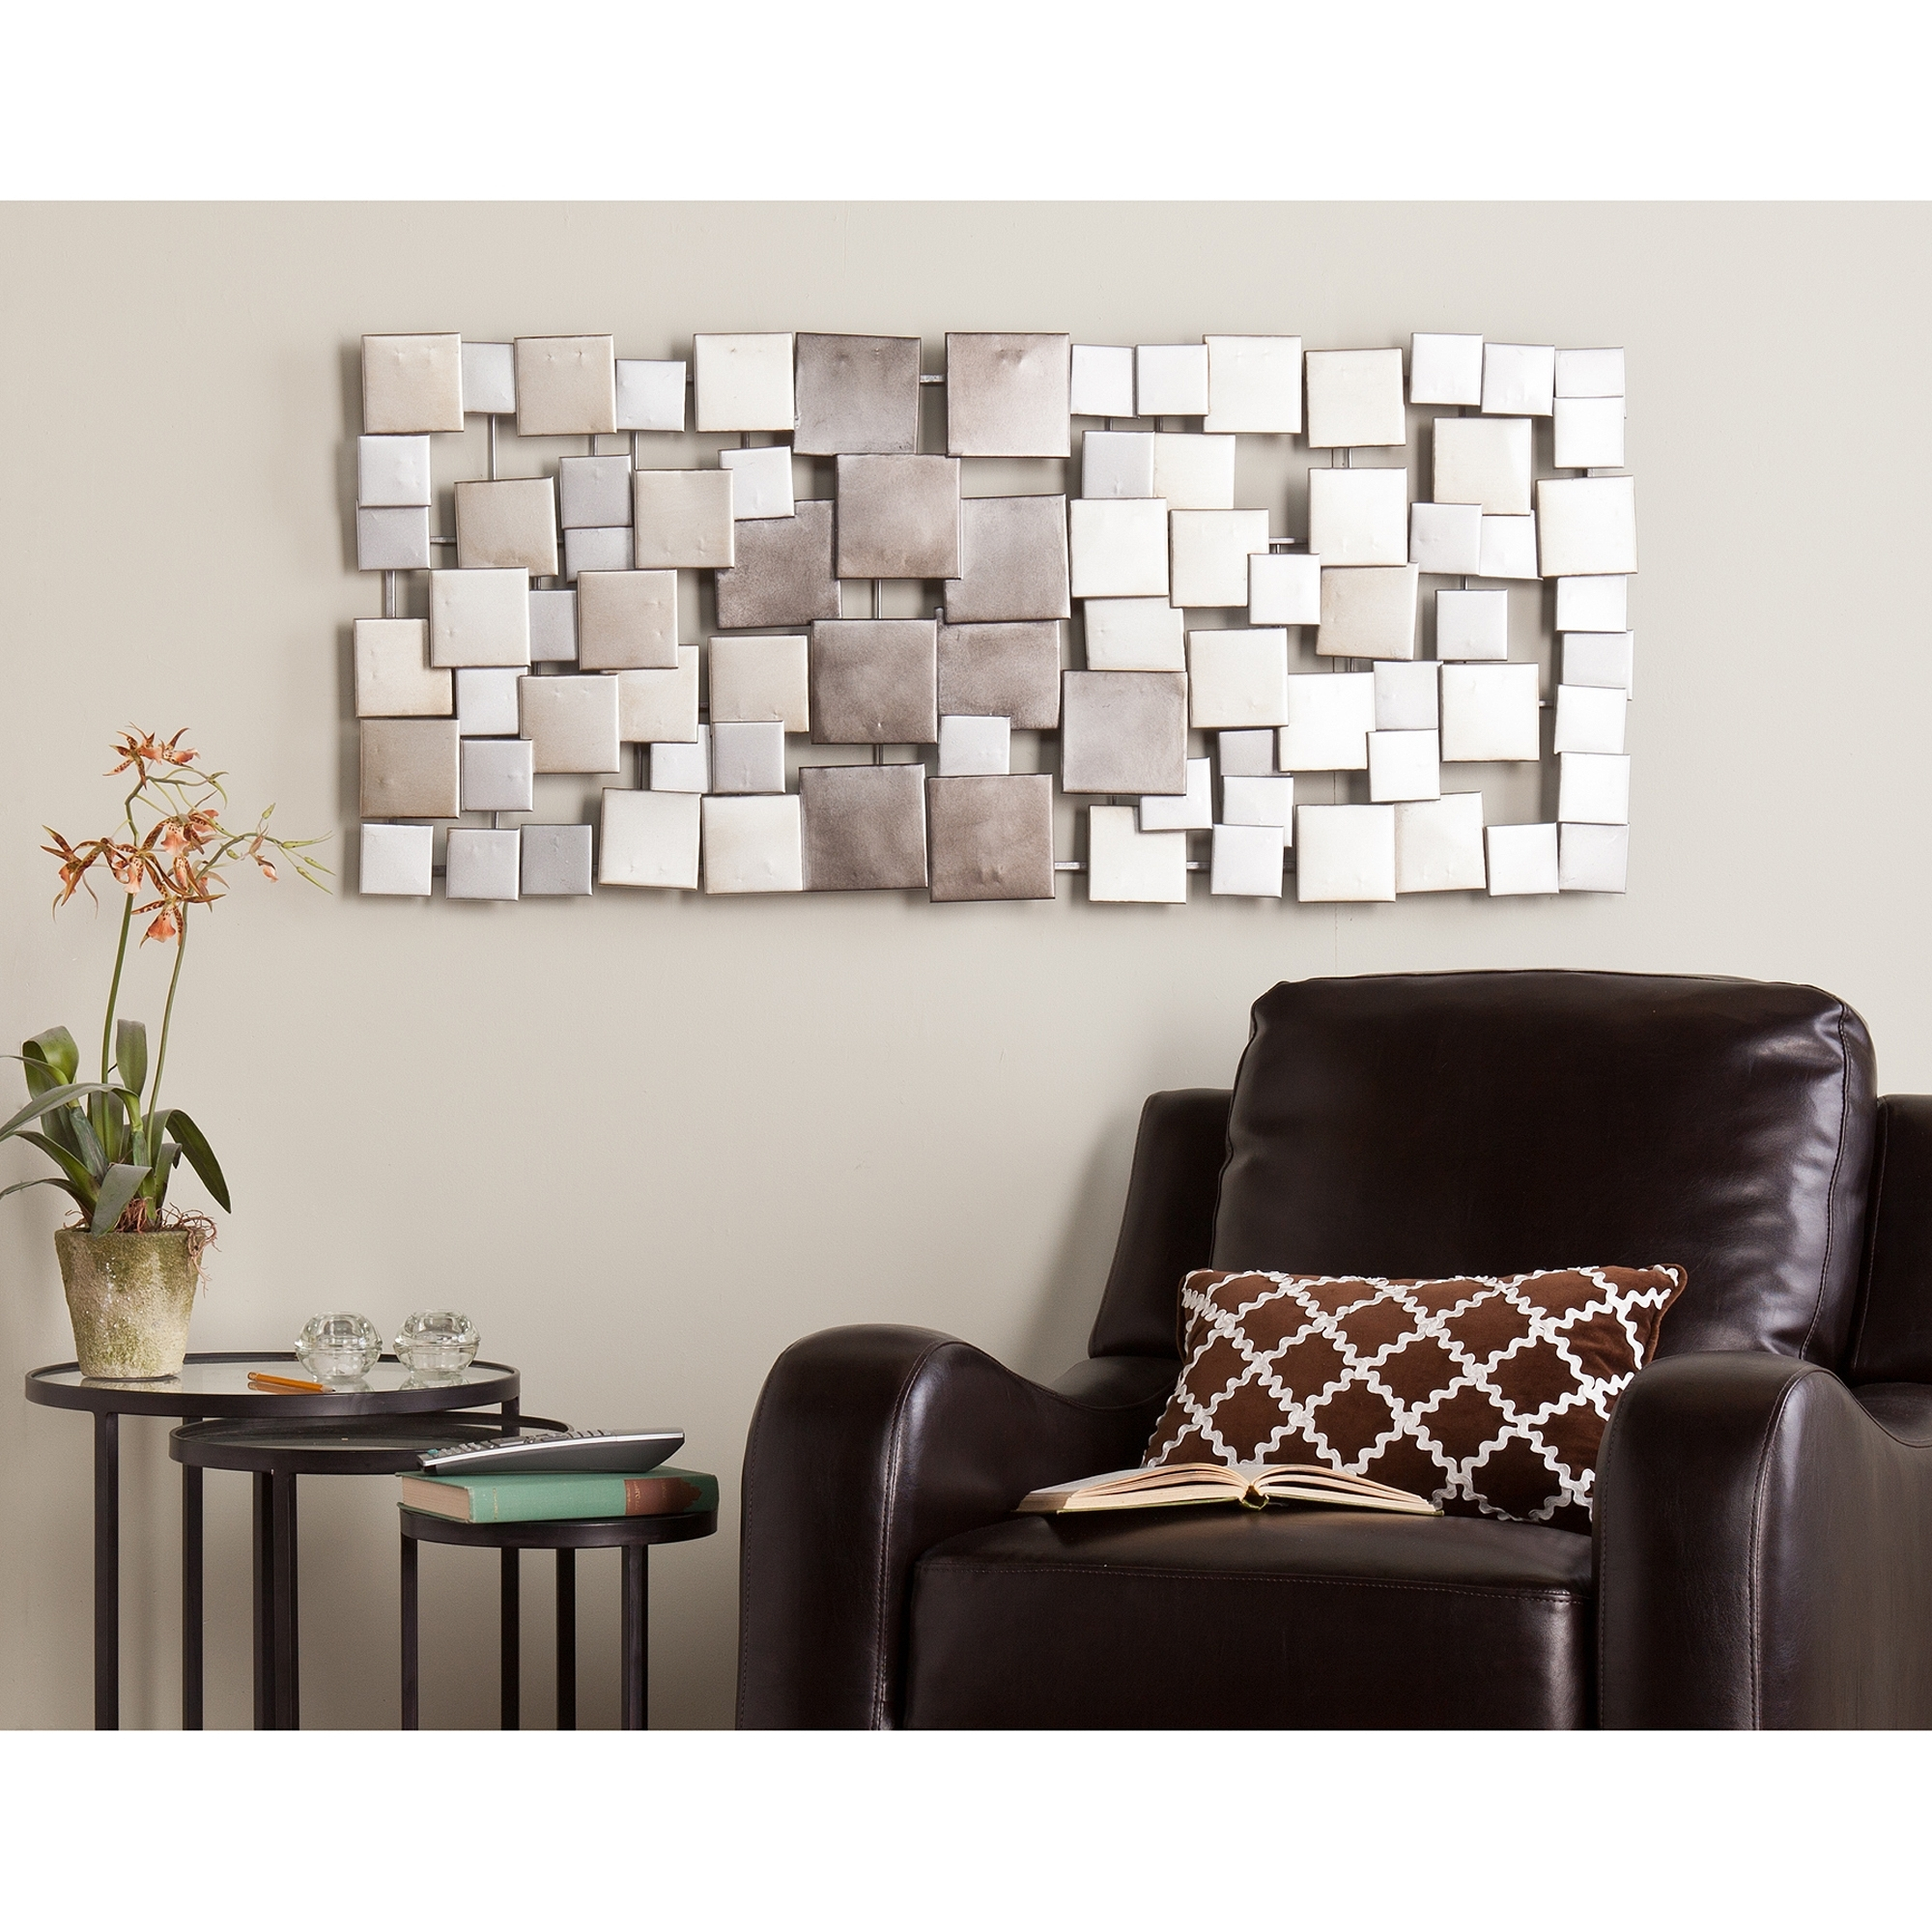 Metal Wall Art – Walmart In Best And Newest 3D Wall Art Walmart (View 8 of 15)